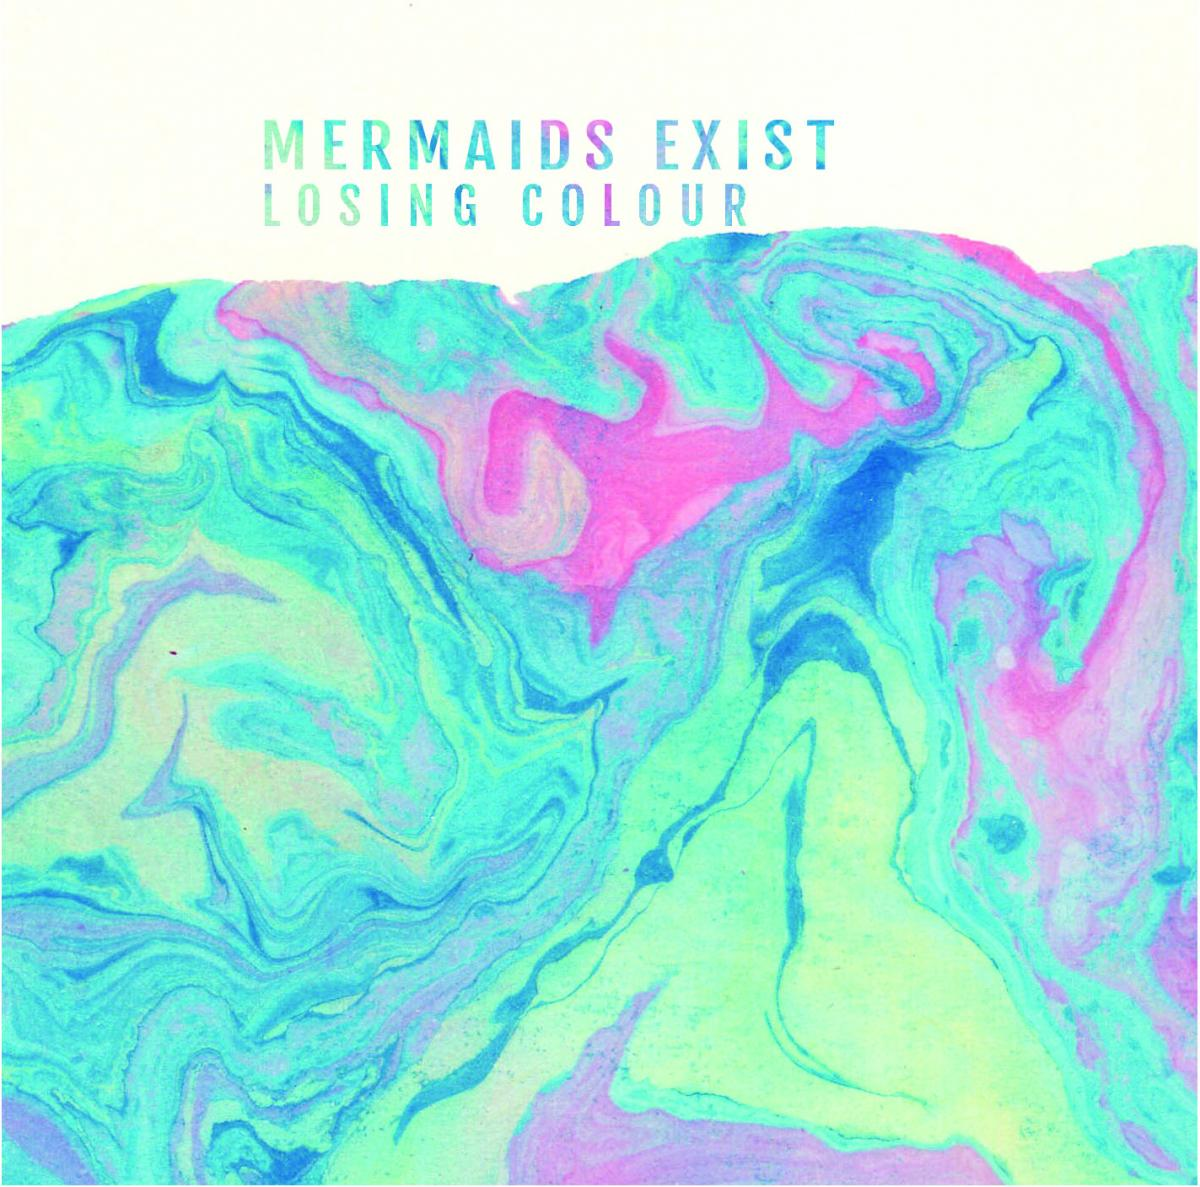 Mermaids Exist release debut CD June 29 @3030